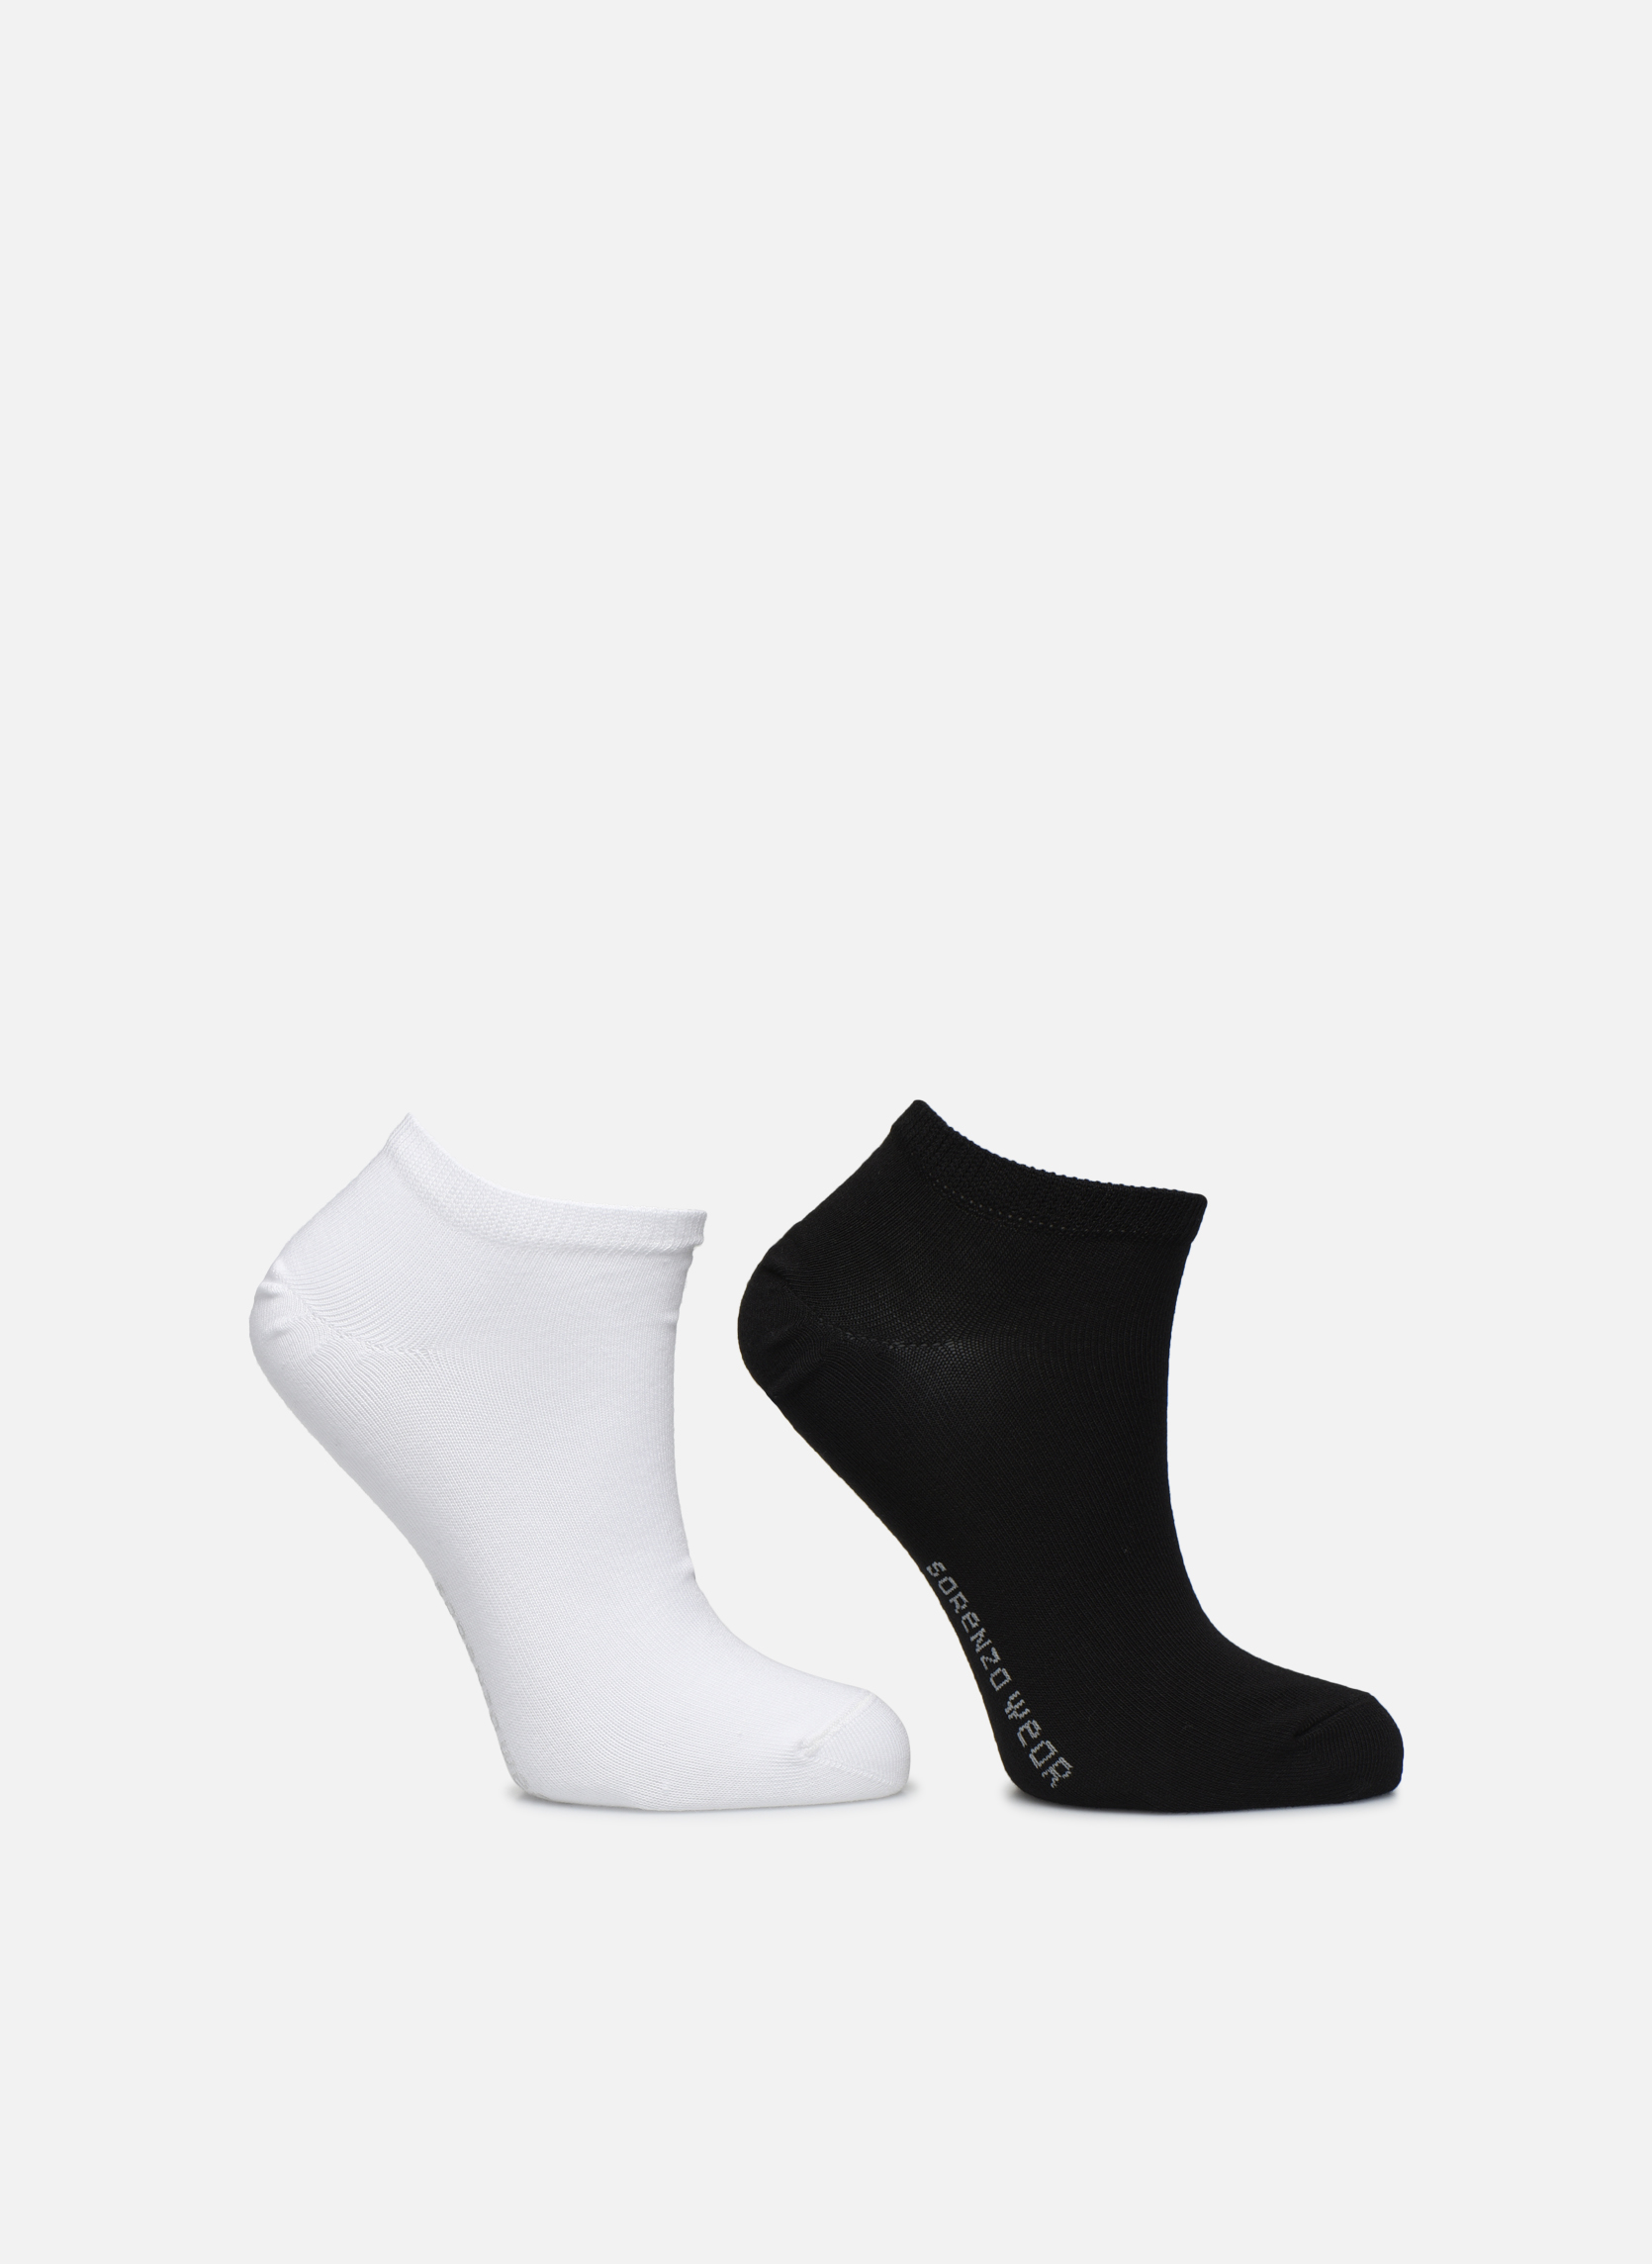 Calcetines invisibles unies Pack de 2 Noir/blanc